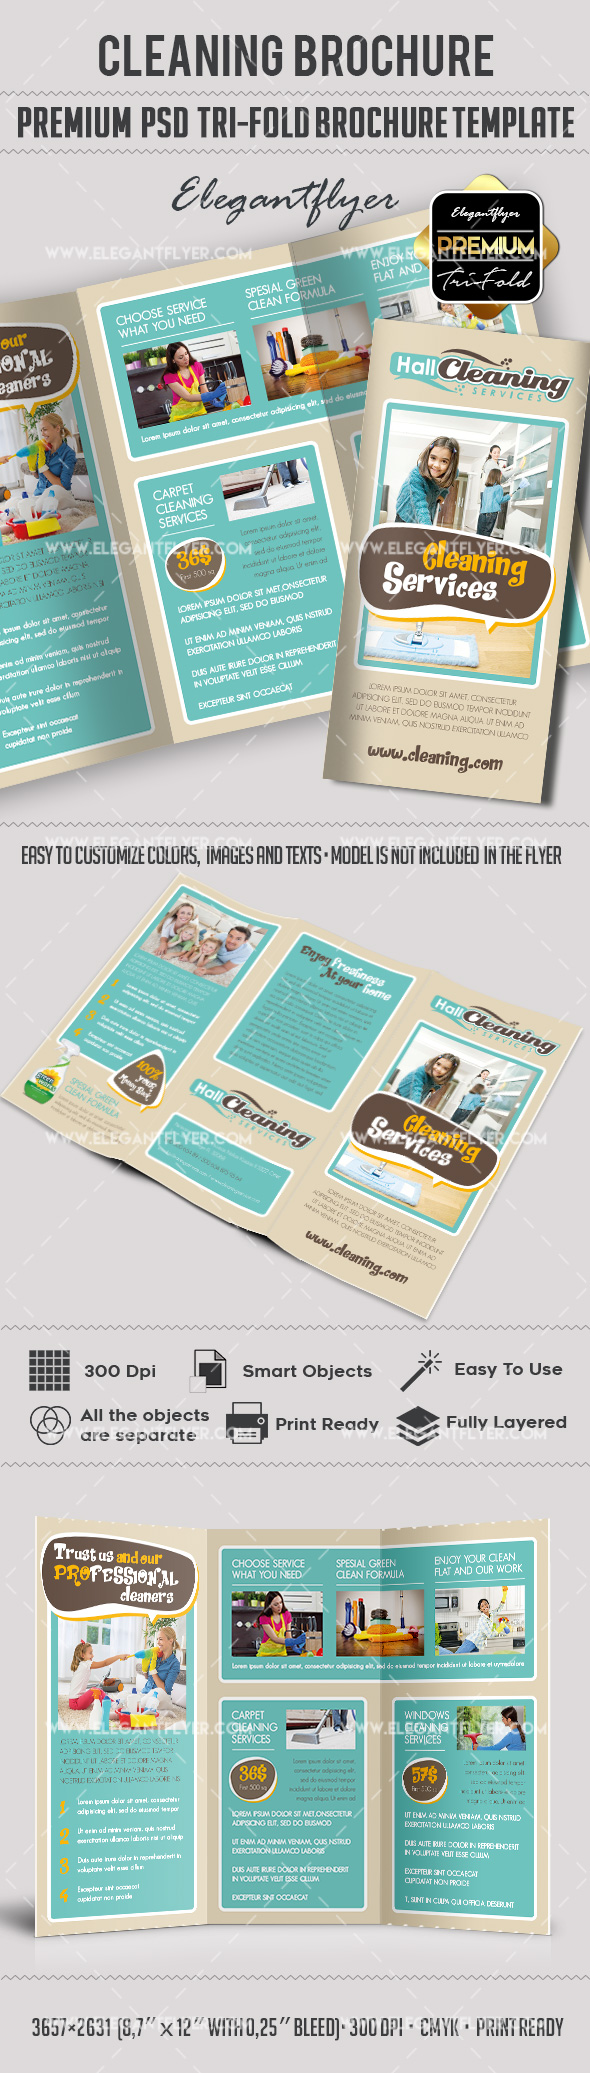 psd tri fold brochure template - psd brochure for cleaning services by elegantflyer